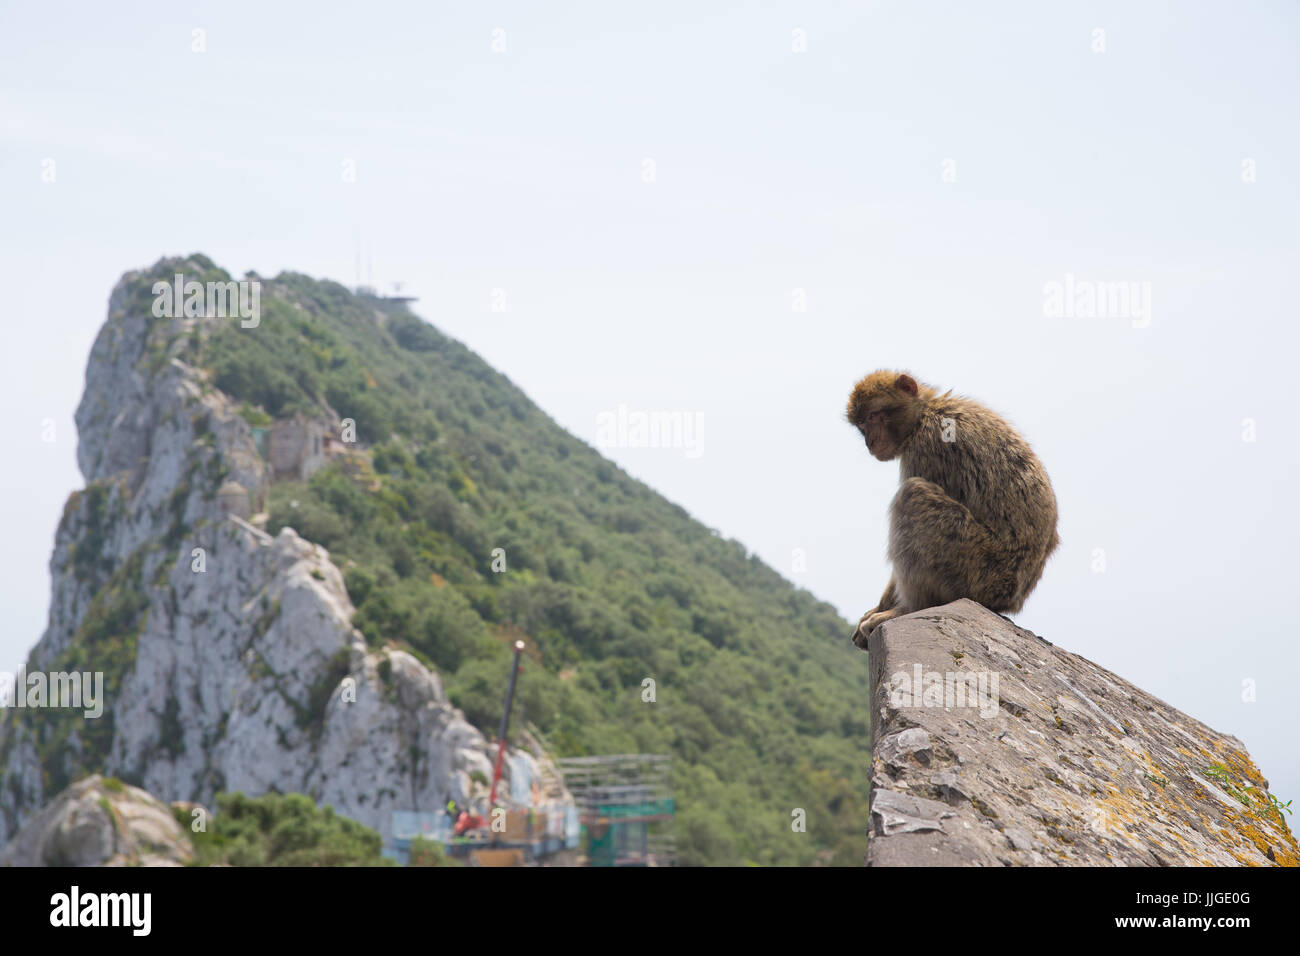 view of the rock in gibraltar, with barbary macaque in foreground looking a bit wistful - Stock Image